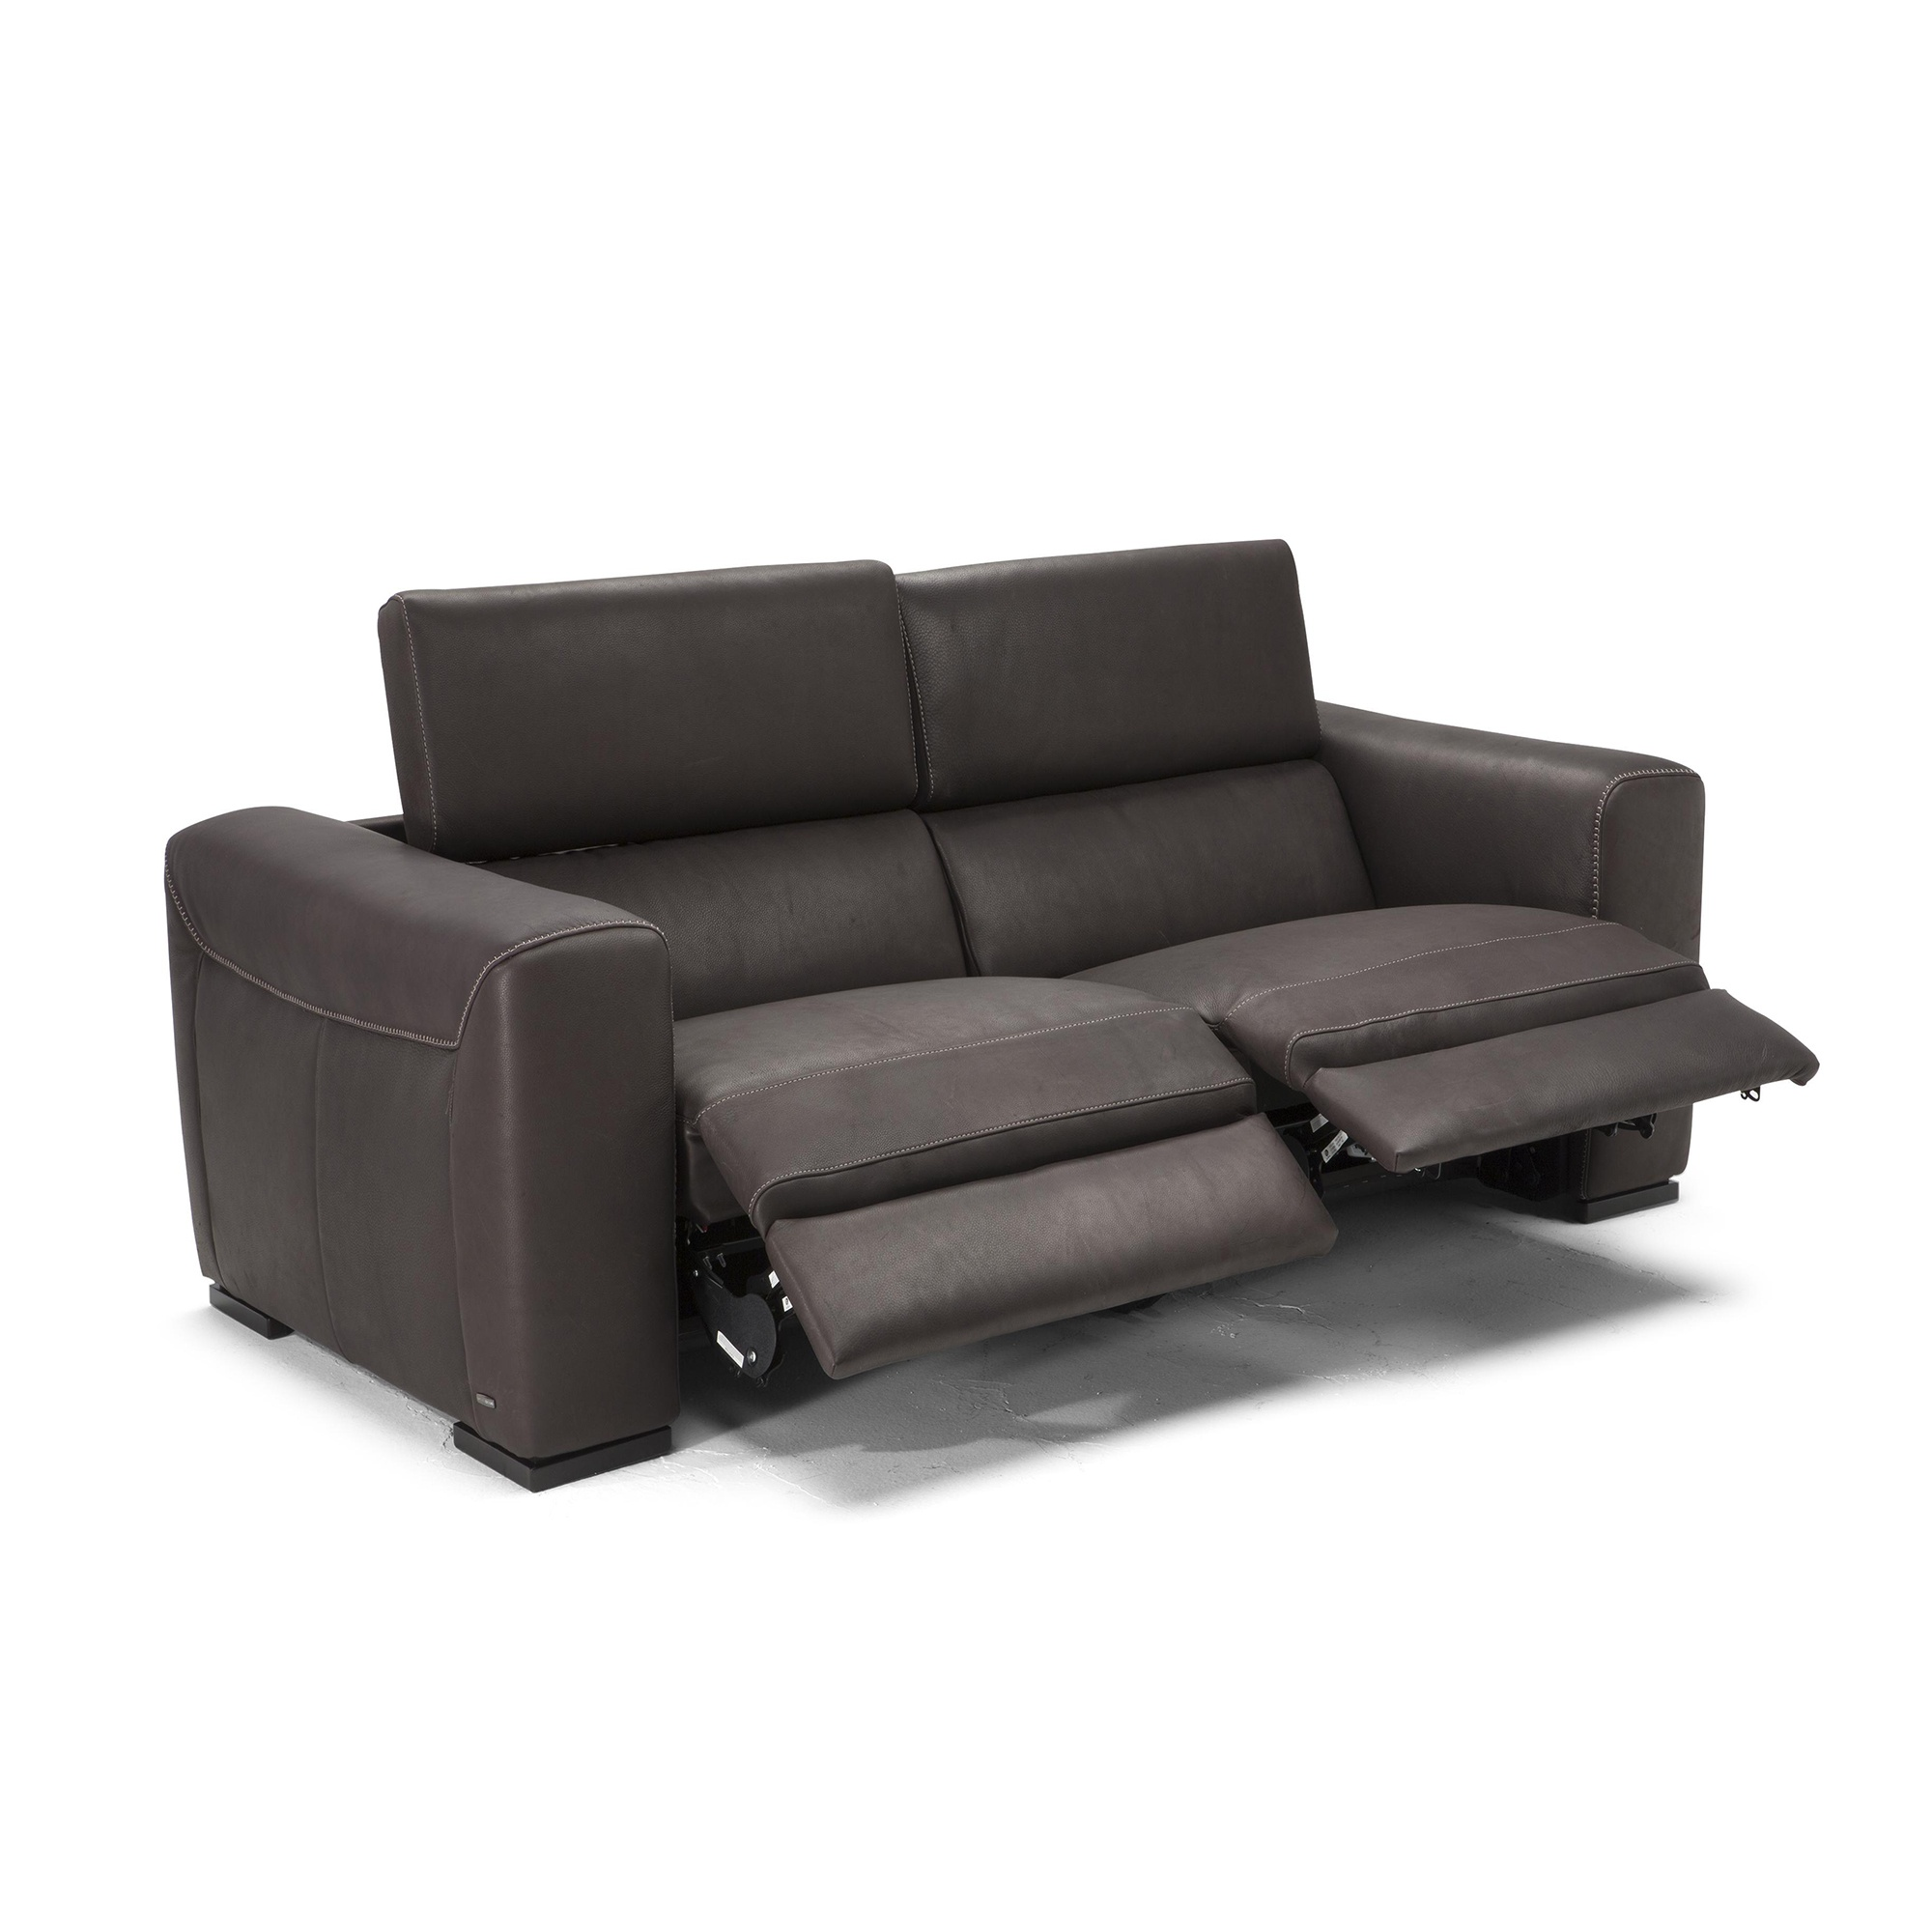 troy garden reclining dual overstock electric product recliner sofa today shipping home power free